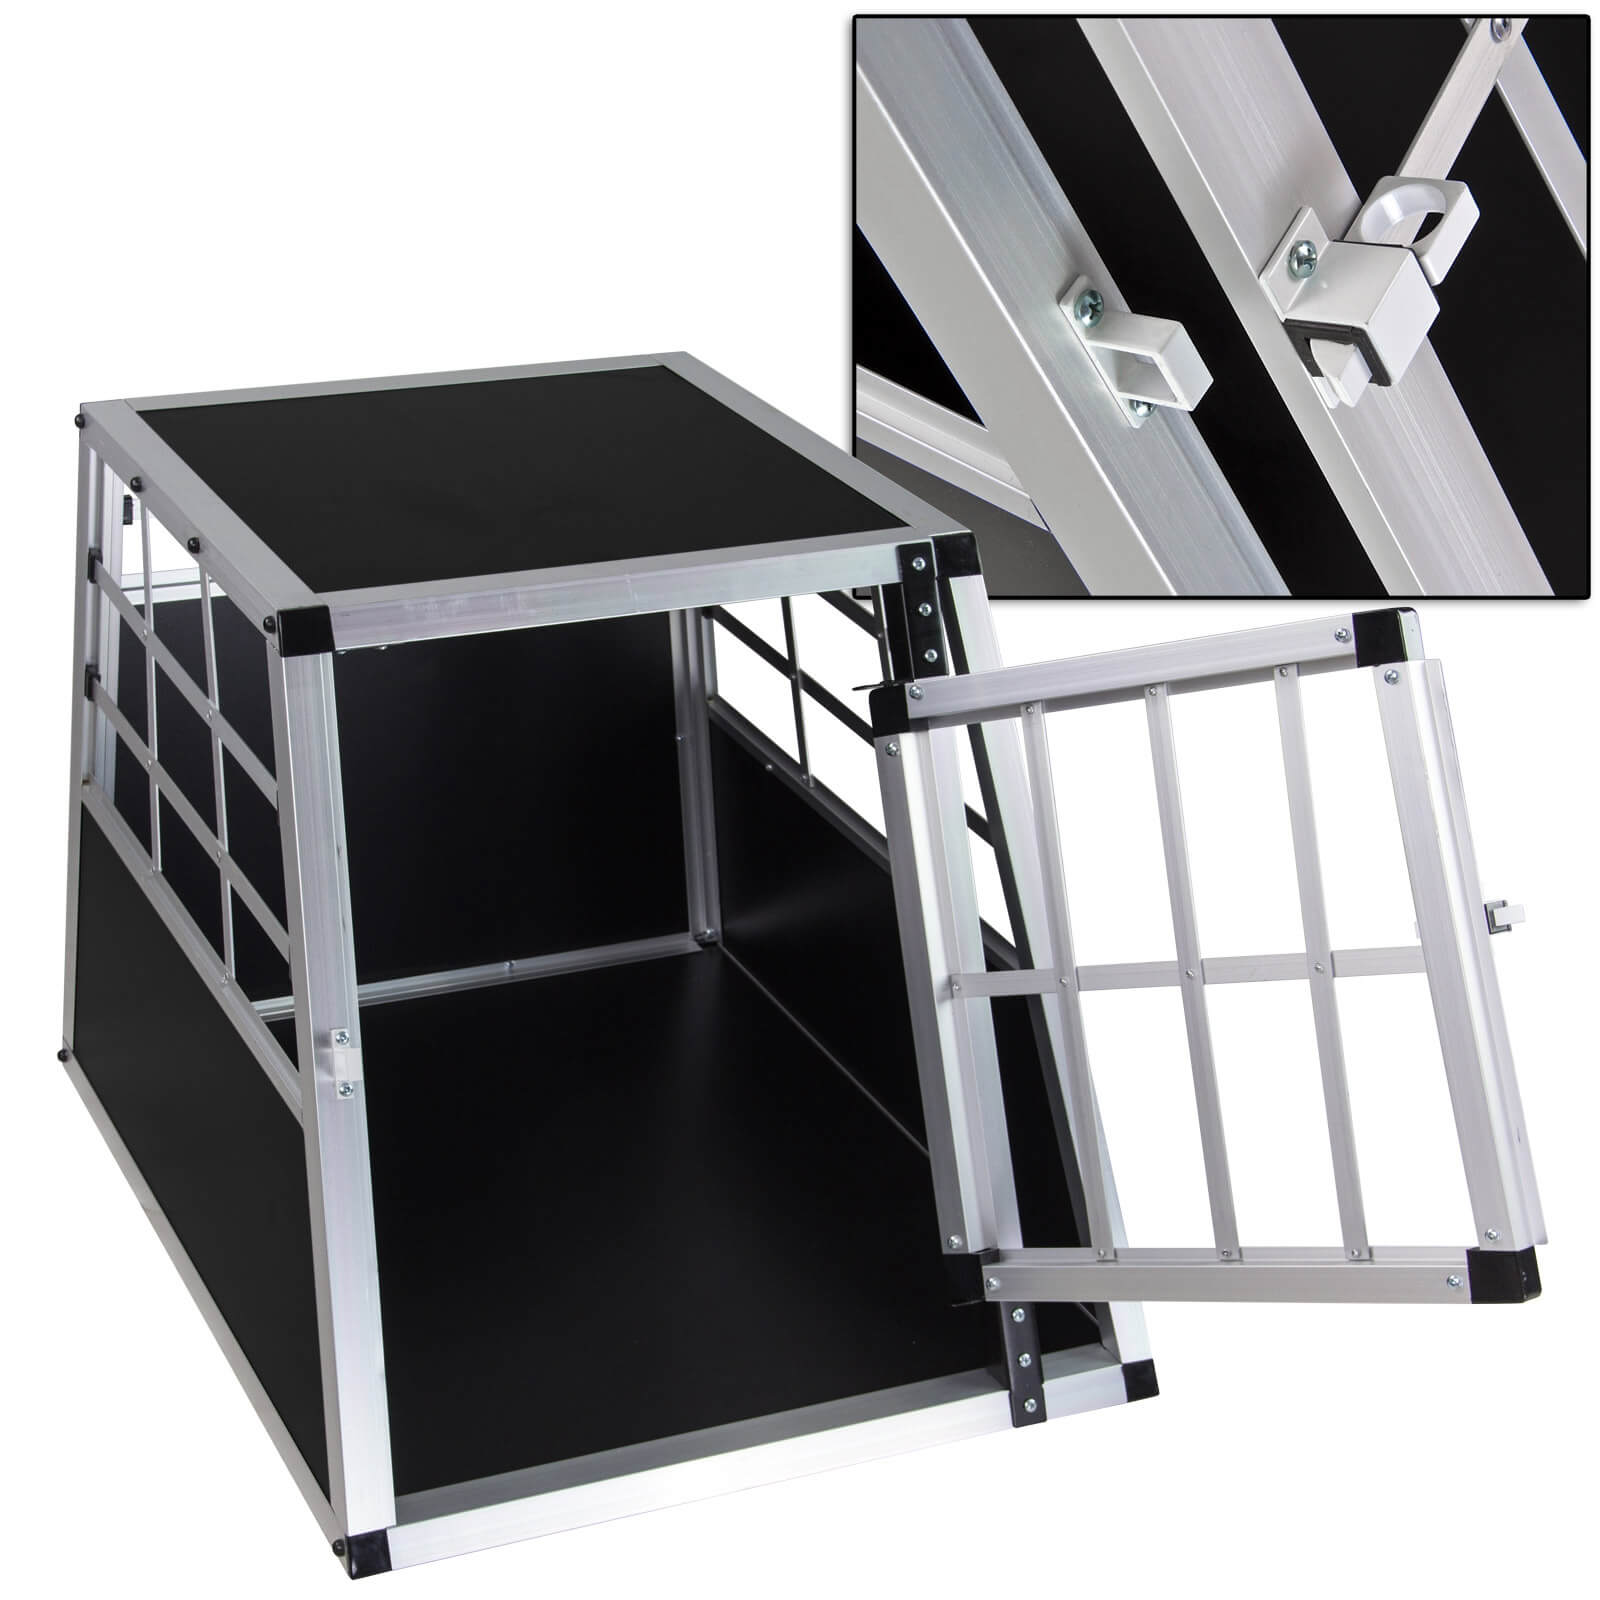 pkw auto alu hundebox hundetransportbox waldi 1. Black Bedroom Furniture Sets. Home Design Ideas